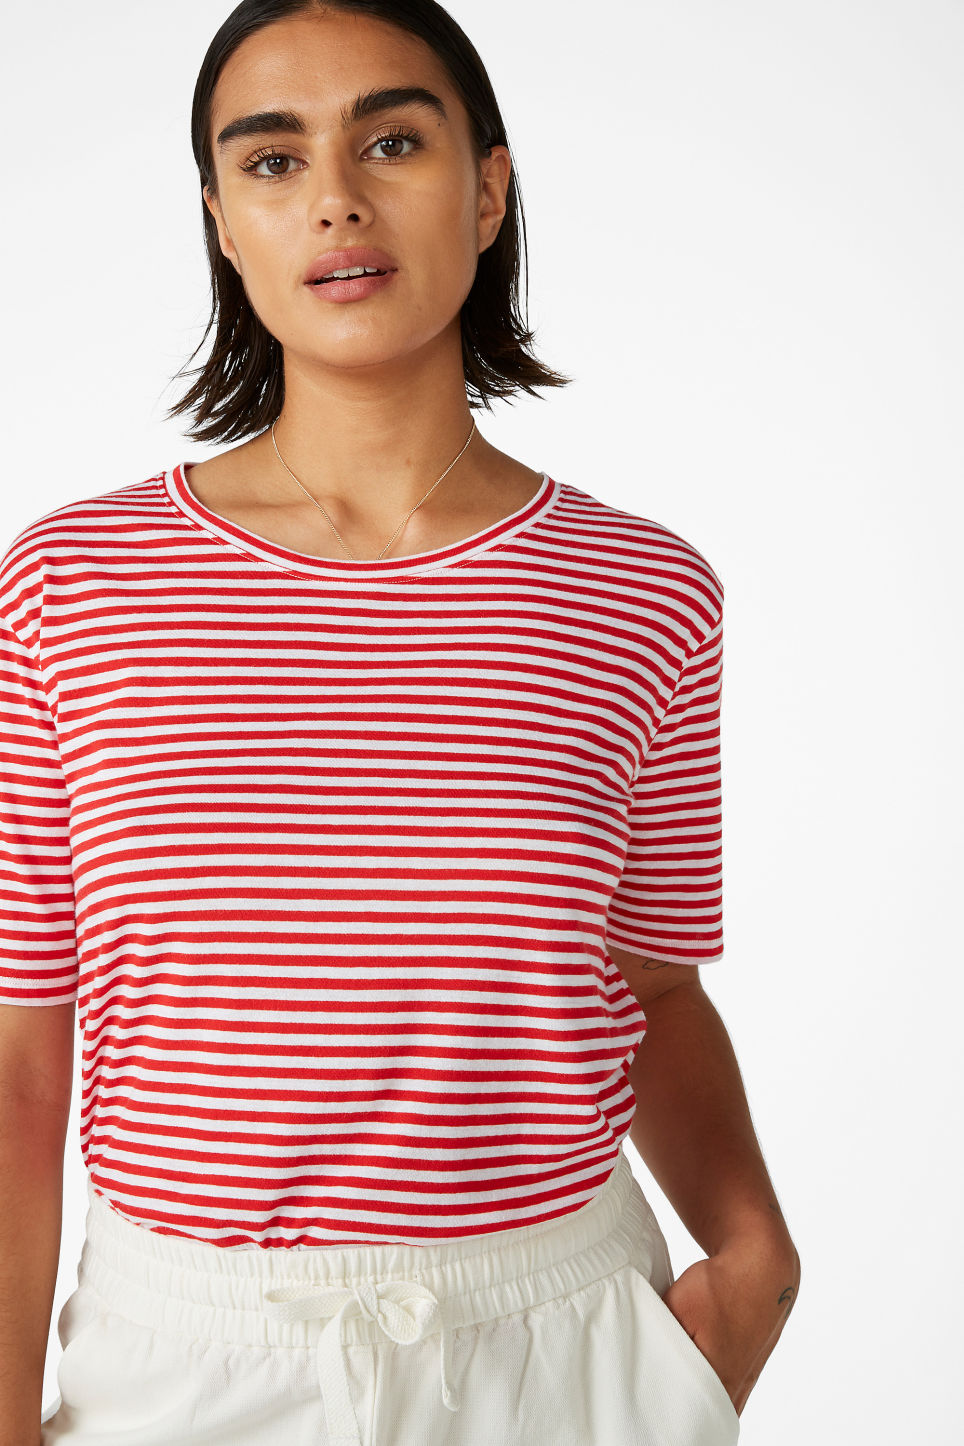 e13cfda0821a Boxy cotton t-shirt - Red and white stripes - Tops - Monki